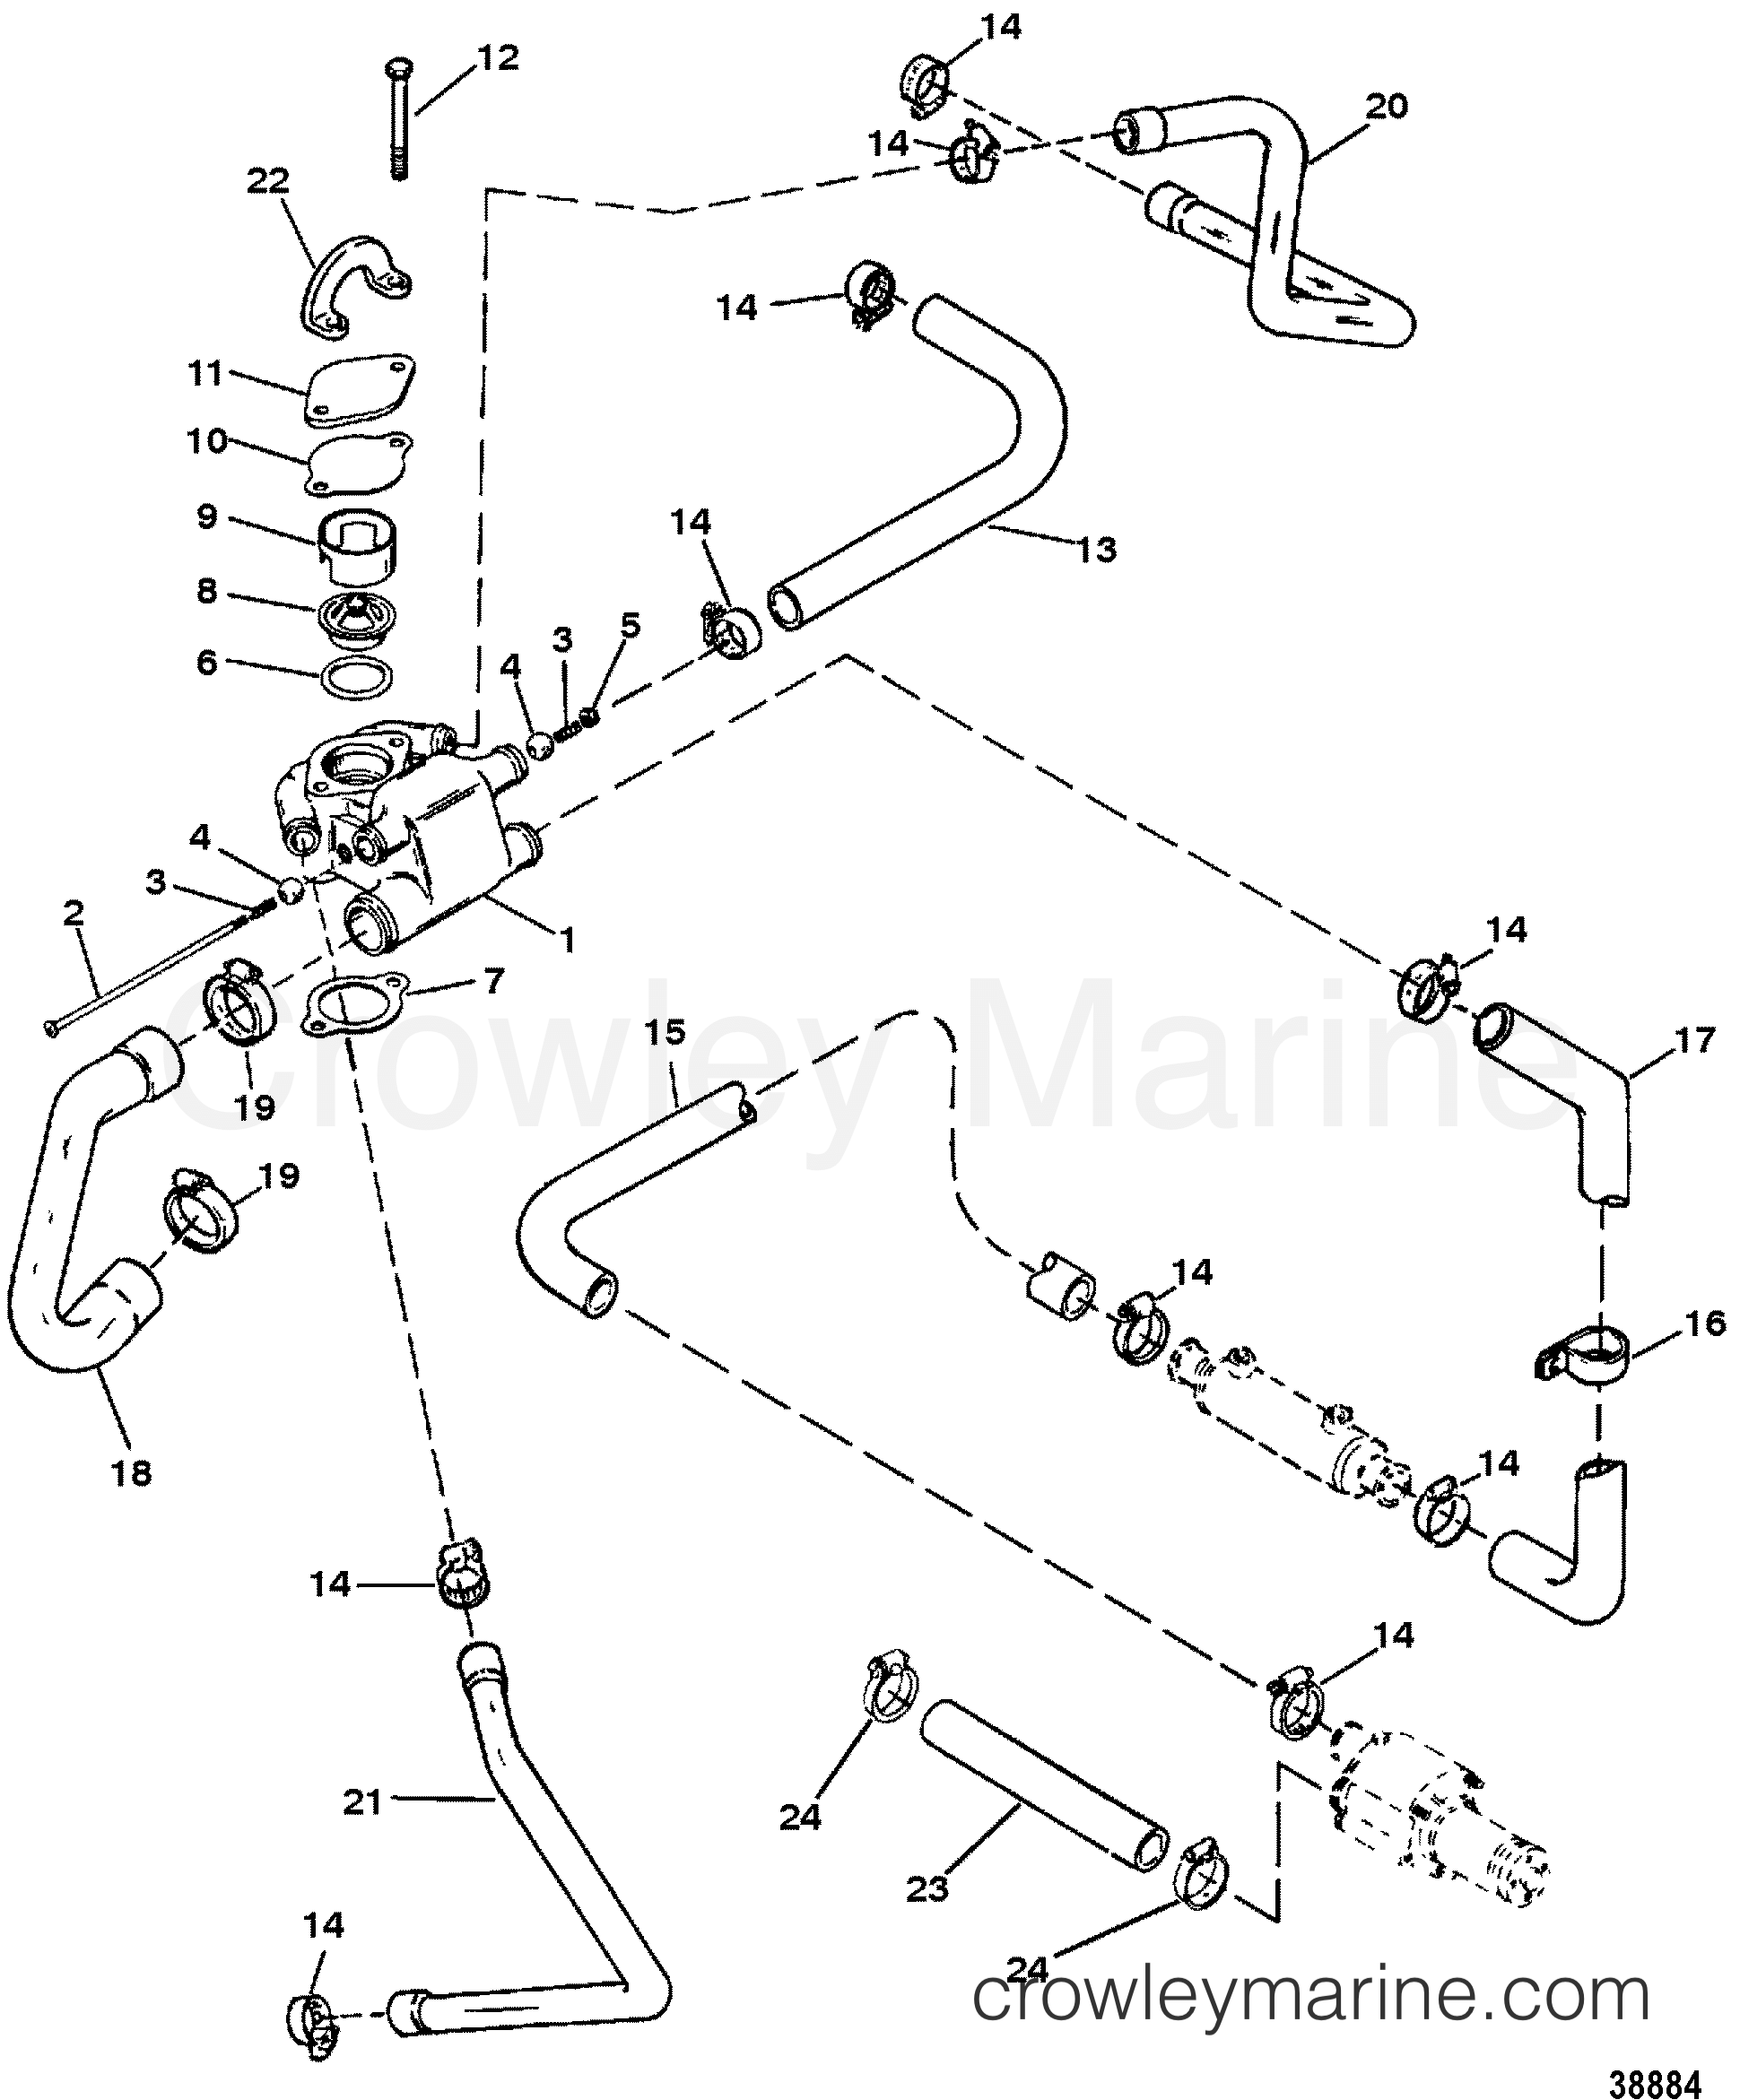 7 4 Mercruiser Cooling Diagram Schematic Diagrams Engine Wiring Thermostat Trusted U2022 57 Liter Chevy